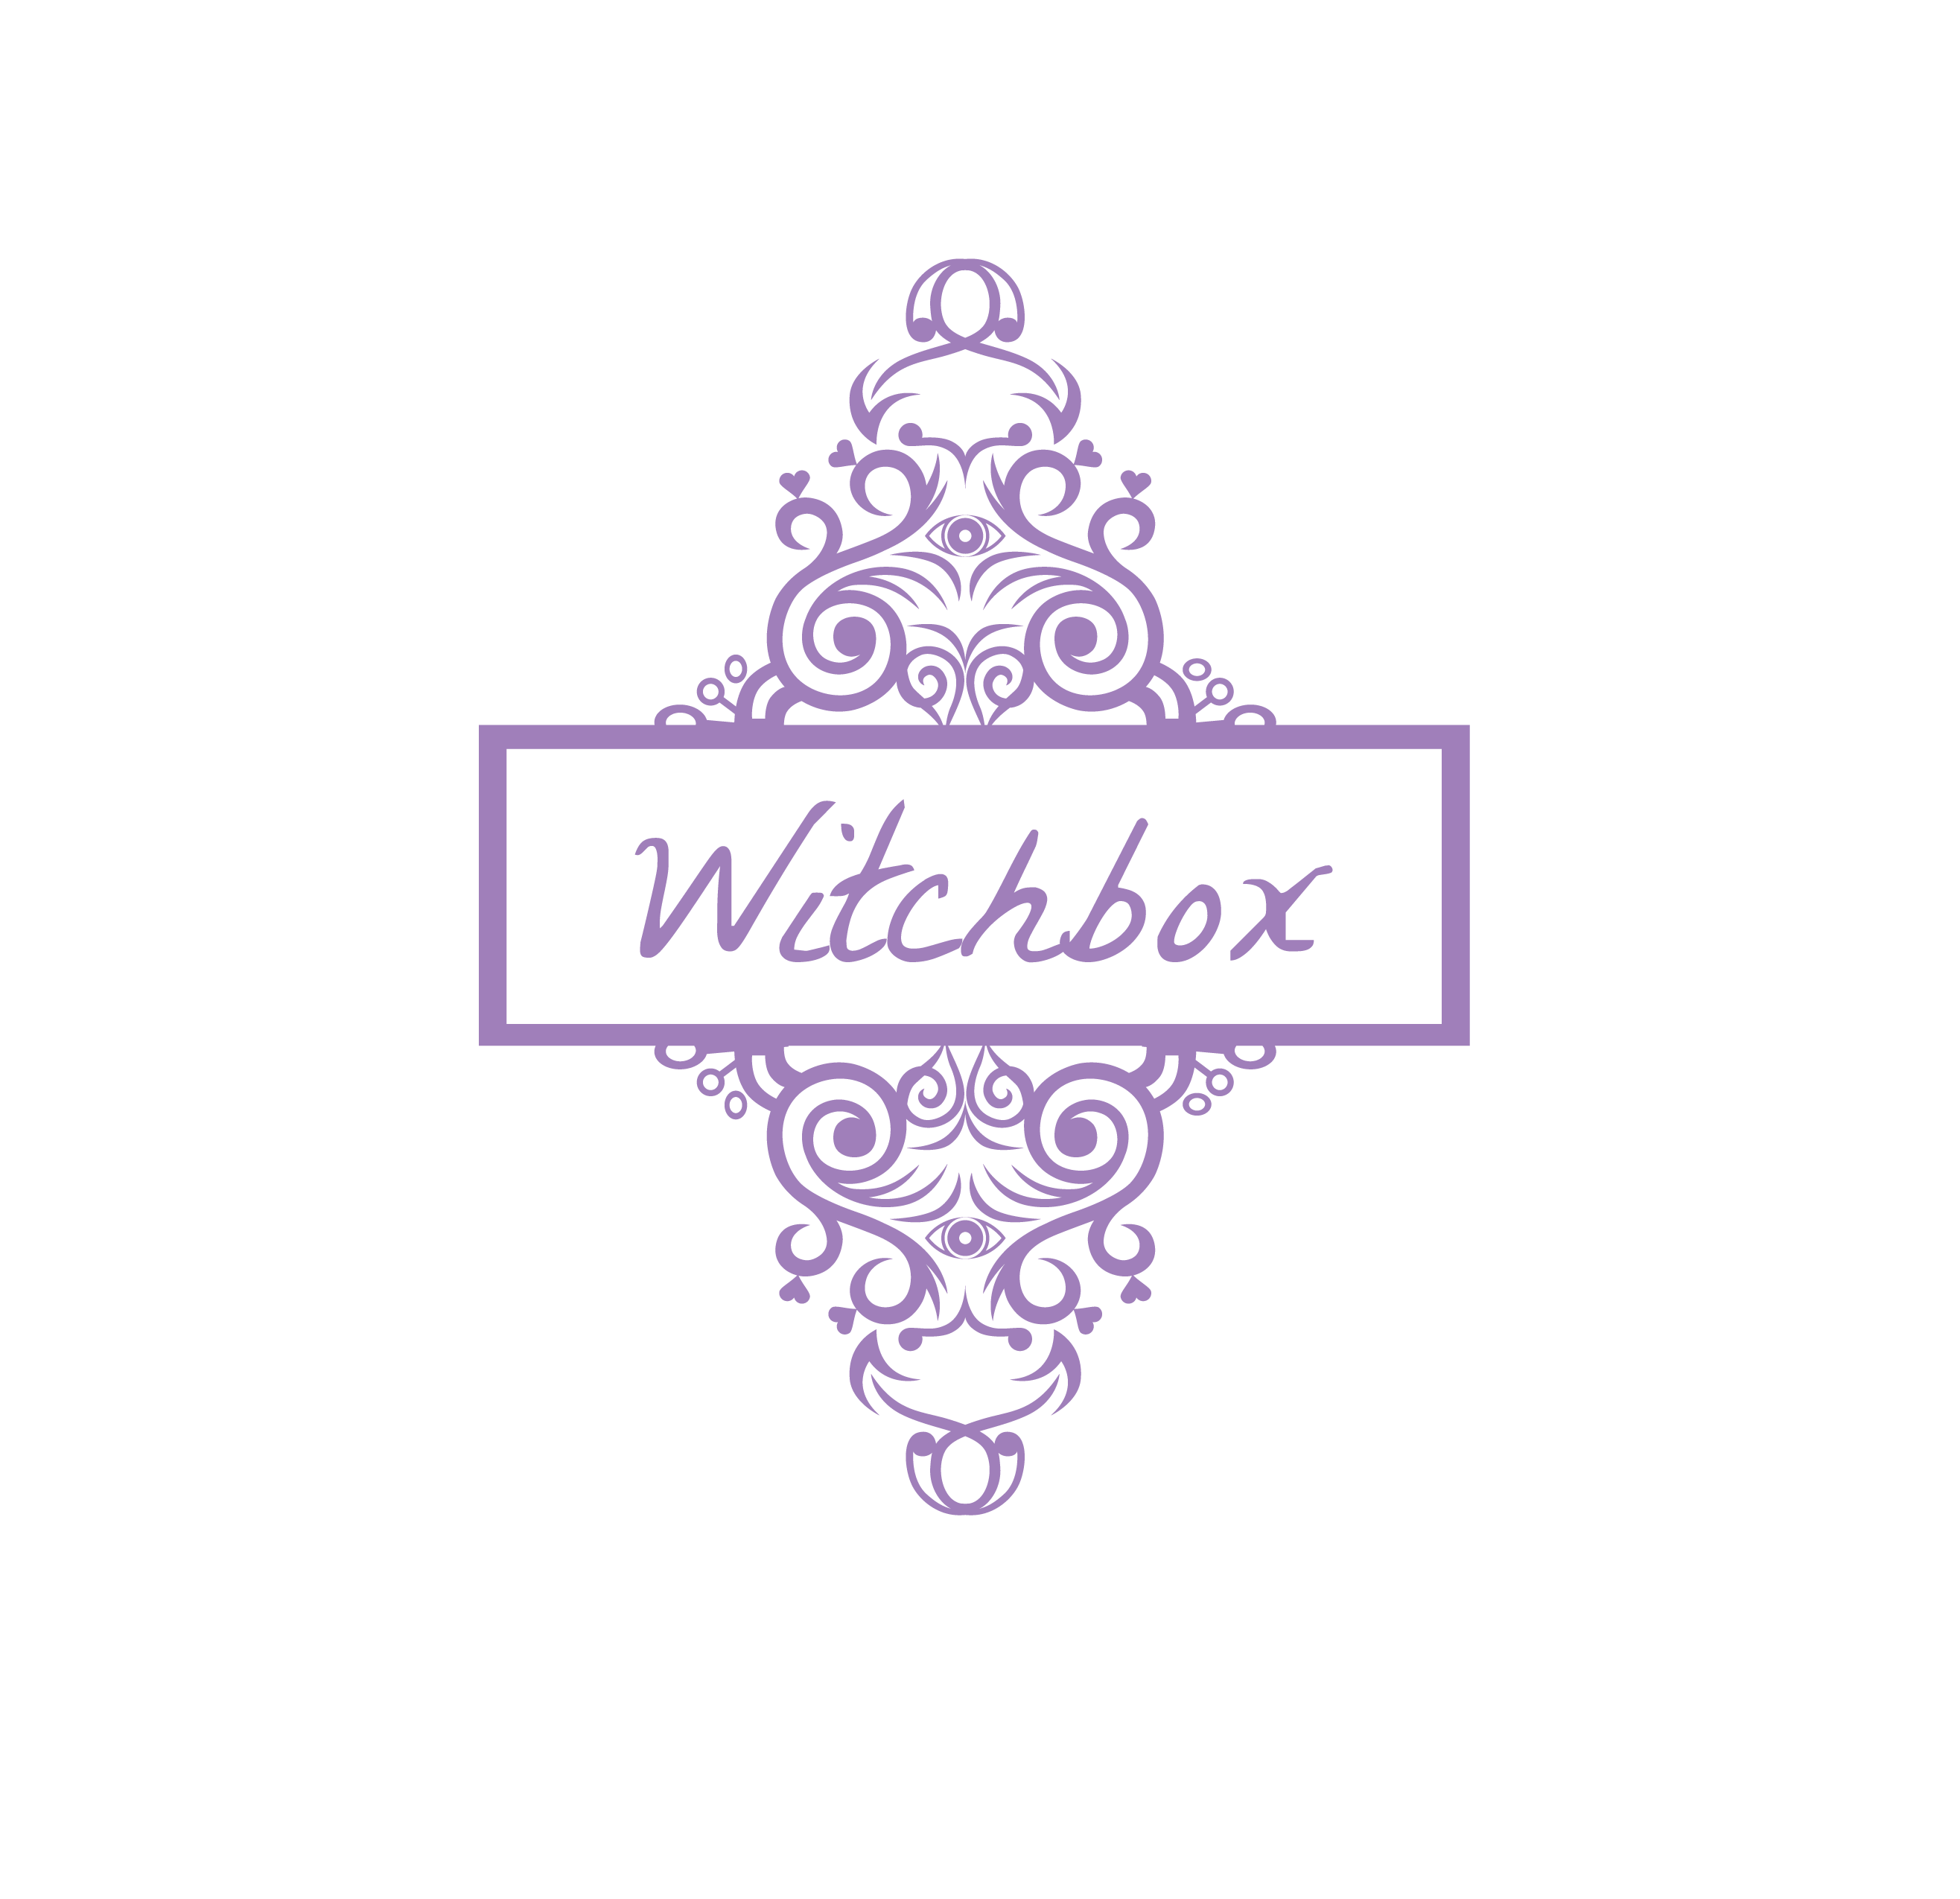 Witchbox-01